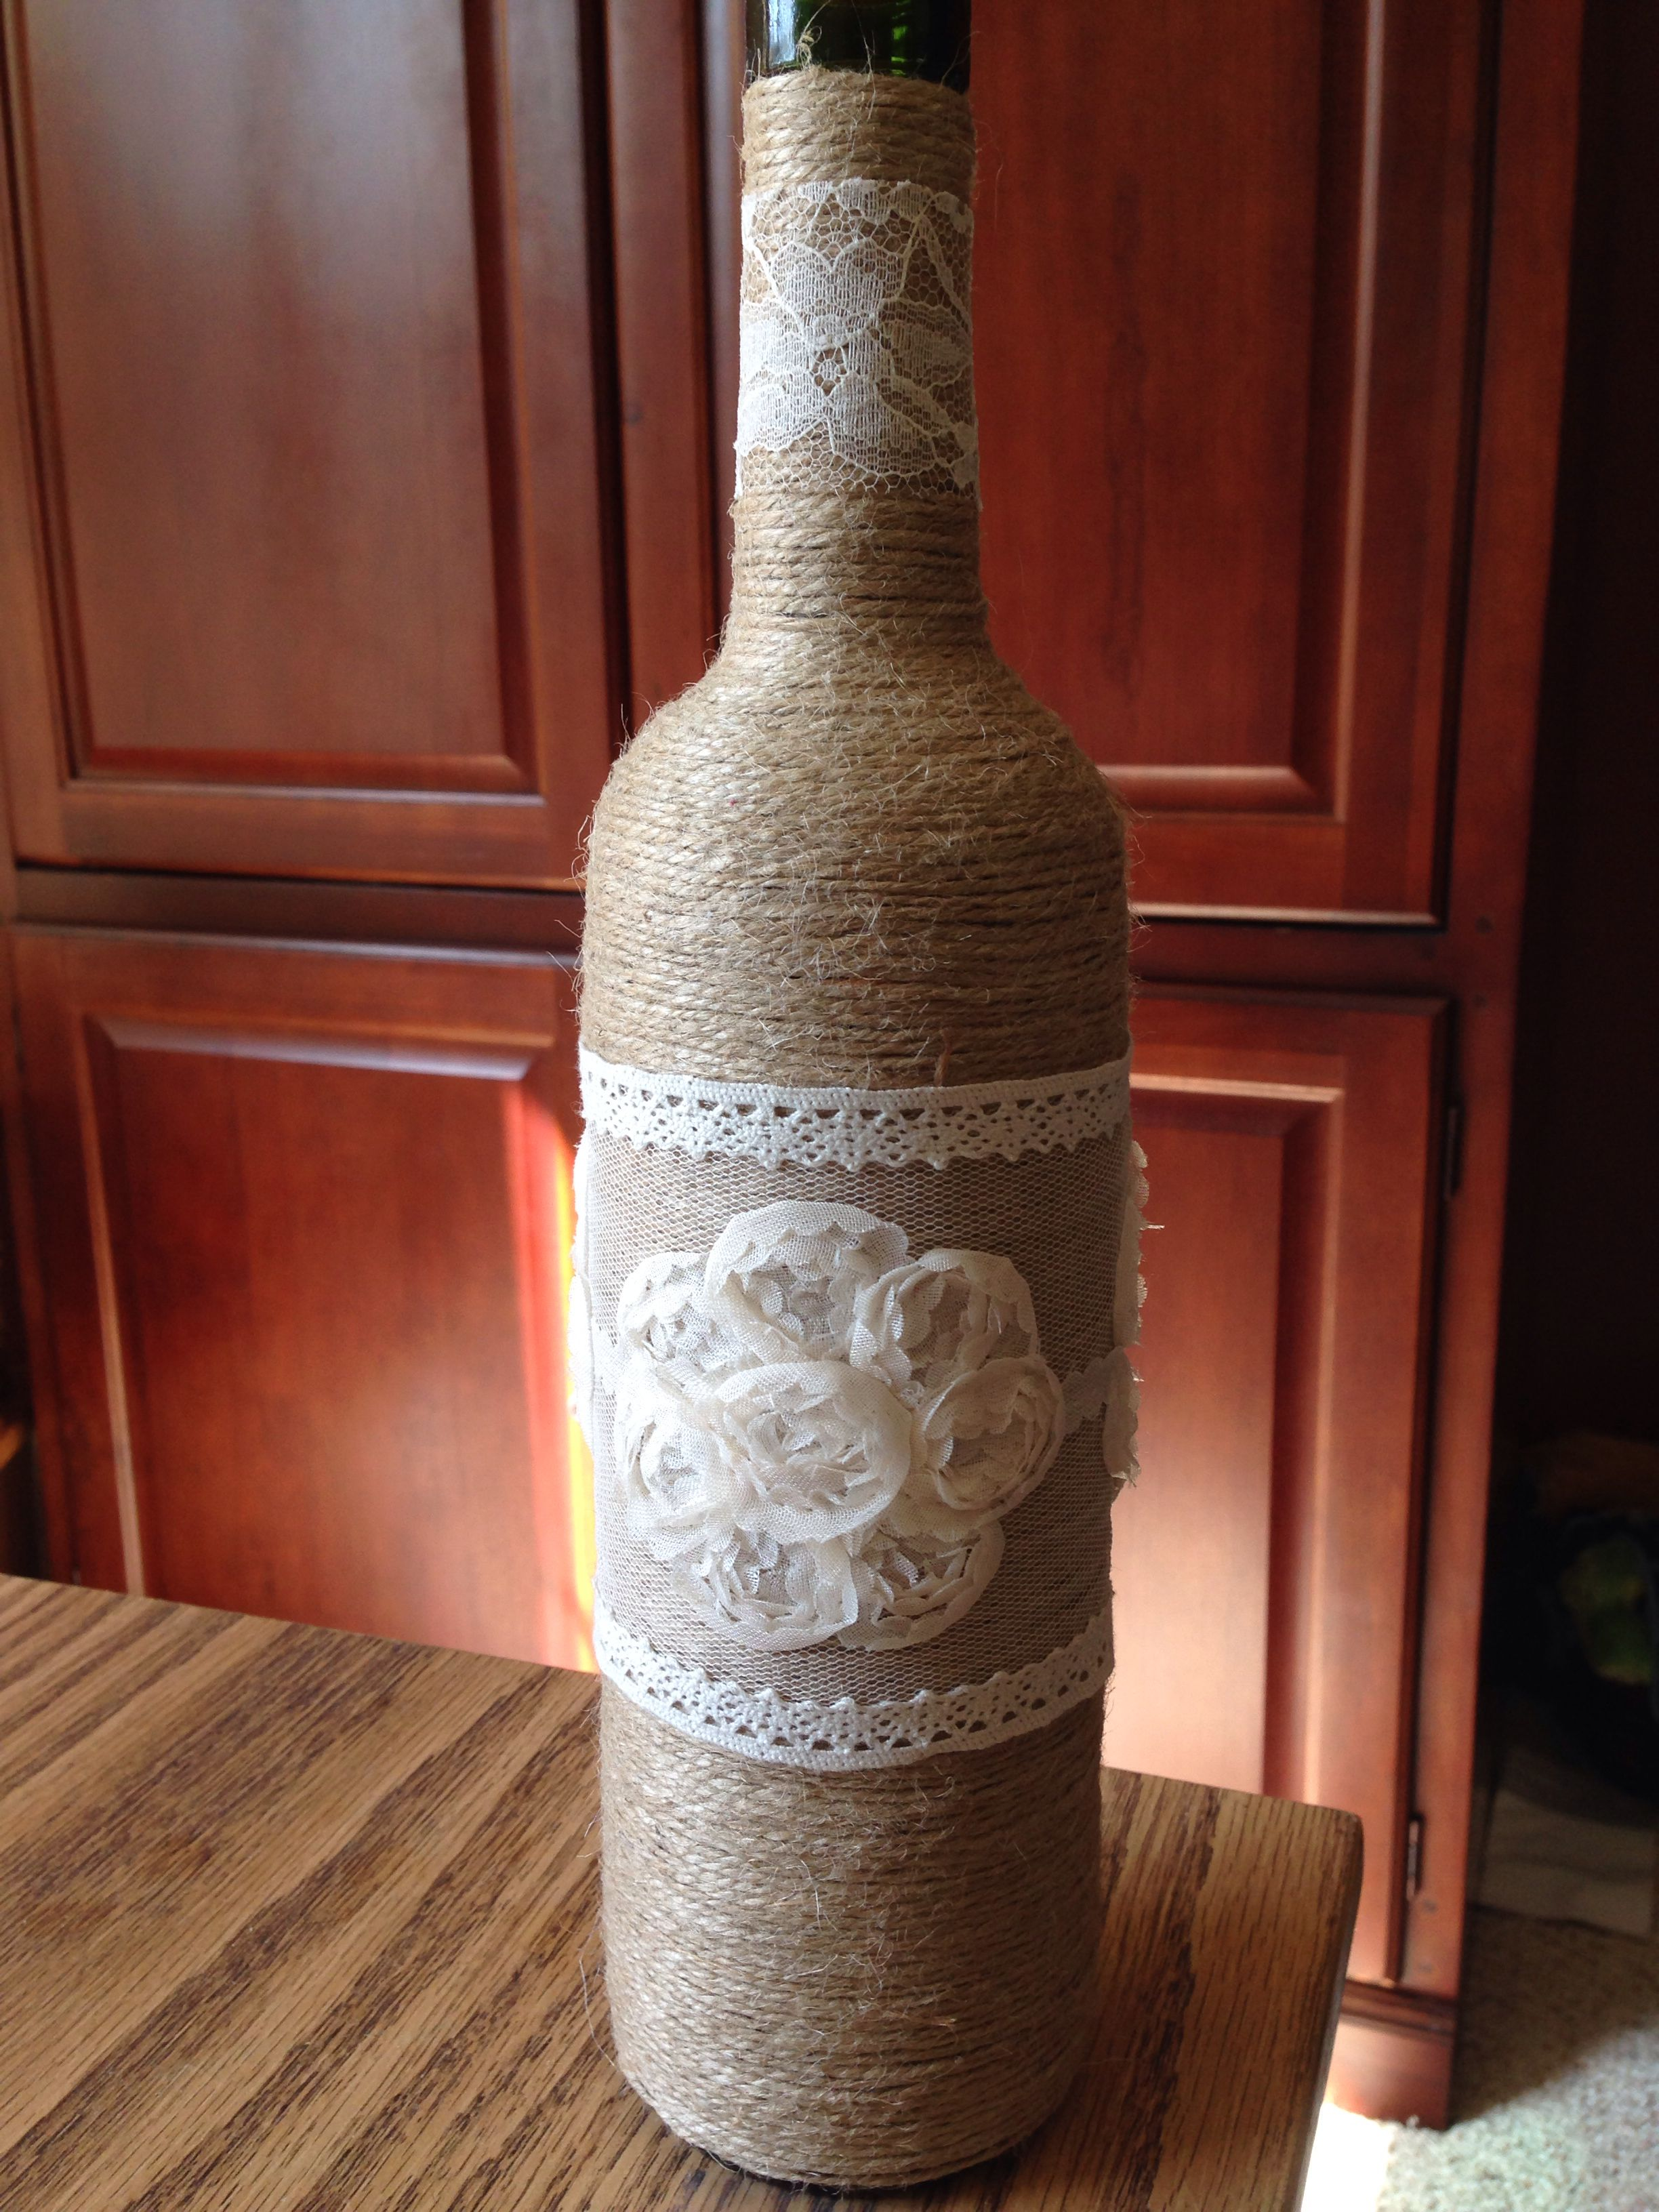 Pin By Joanne Rill On The Crafts I Have Made Wine Bottle Wedding Decor Empty Wine Bottle Crafts Wine Bottle Decor